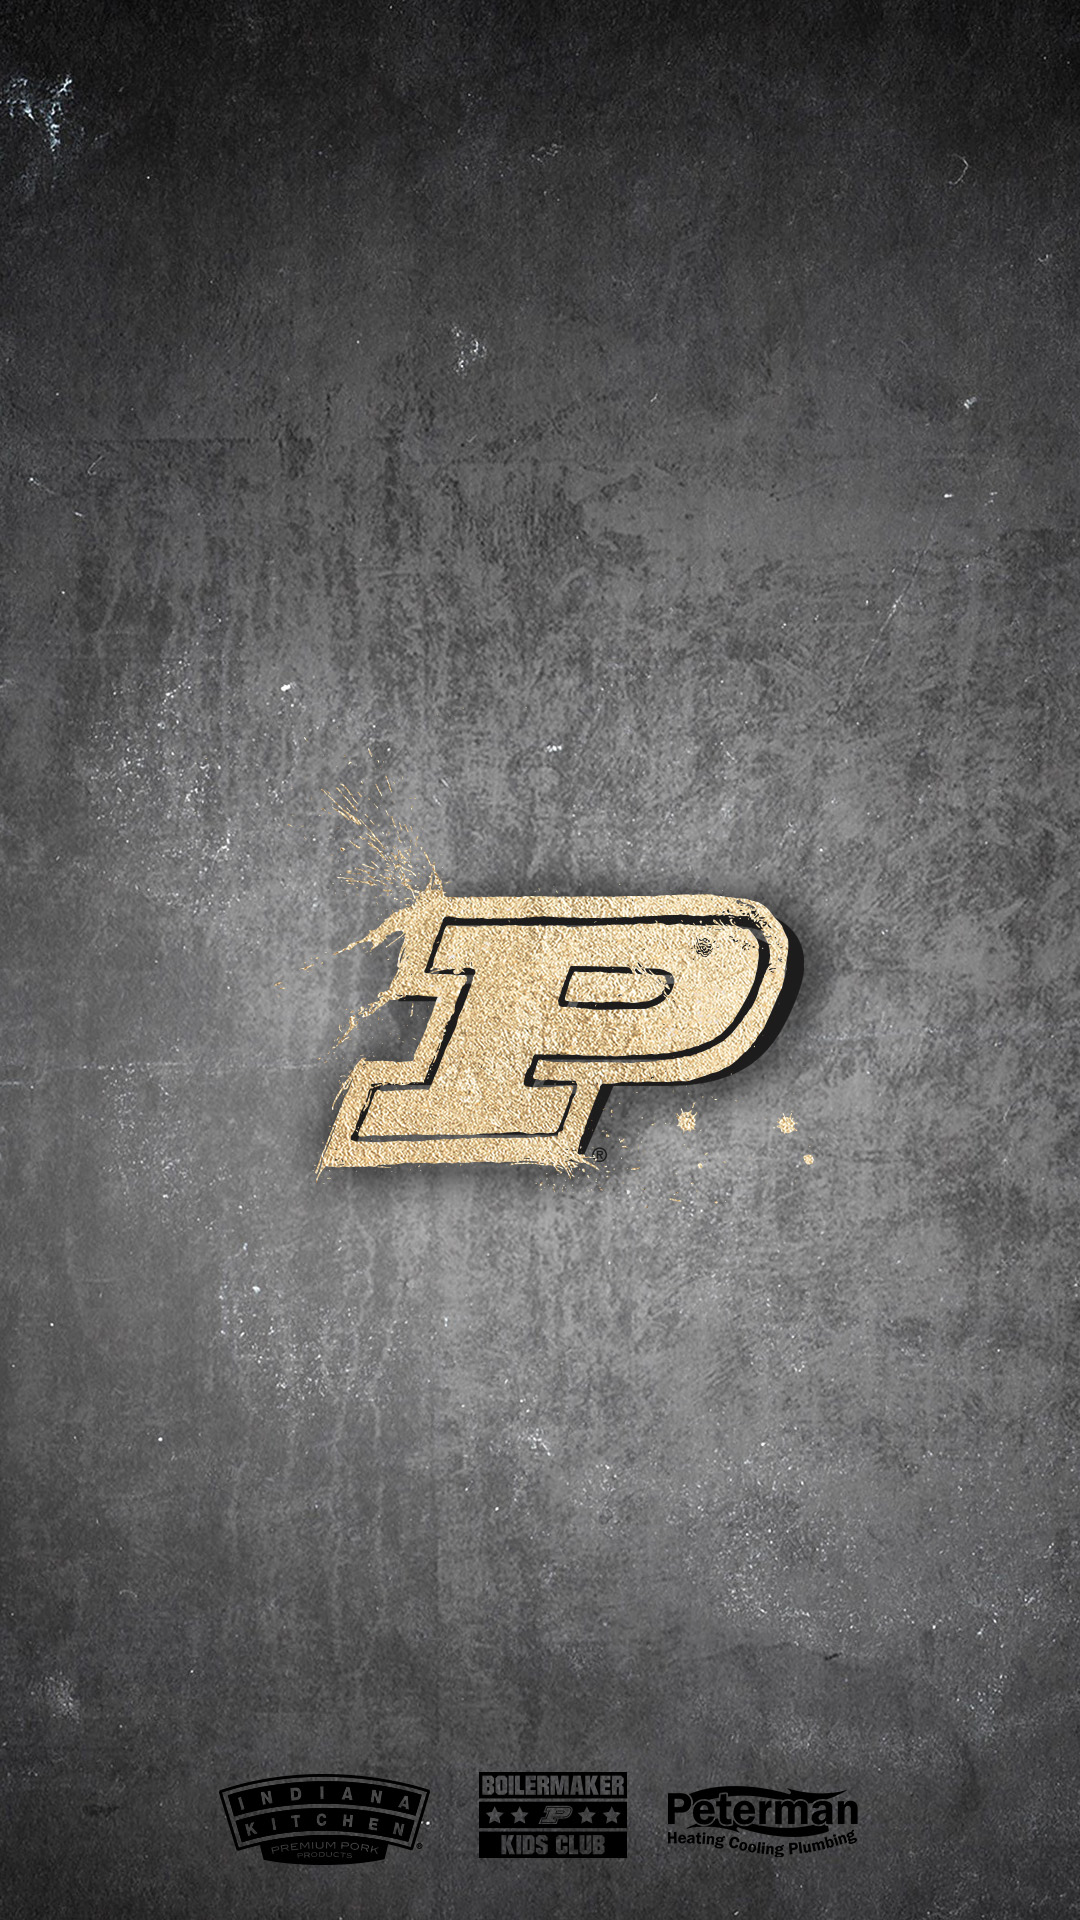 Boilermaker Kids Club   Purdue University Athletics 1080x1920